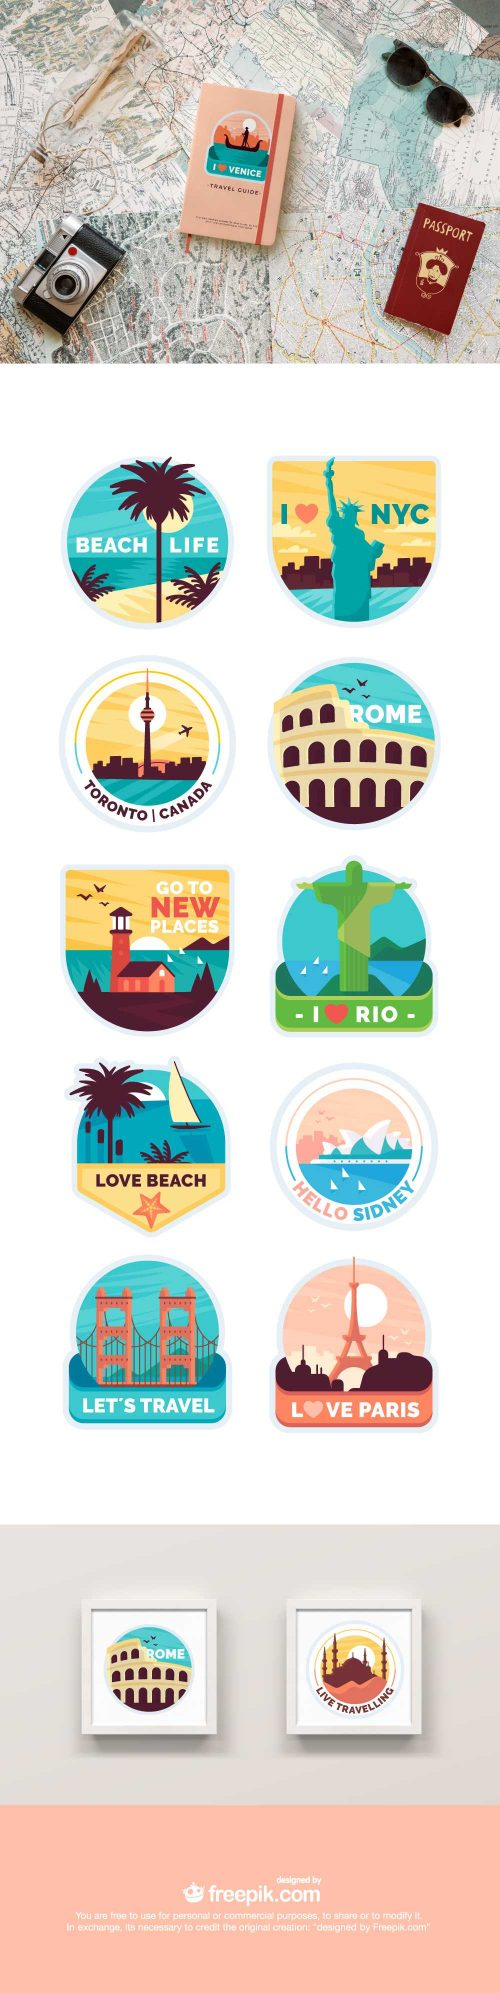 travel-sticker-set-featured-screenshot-03-500x1993